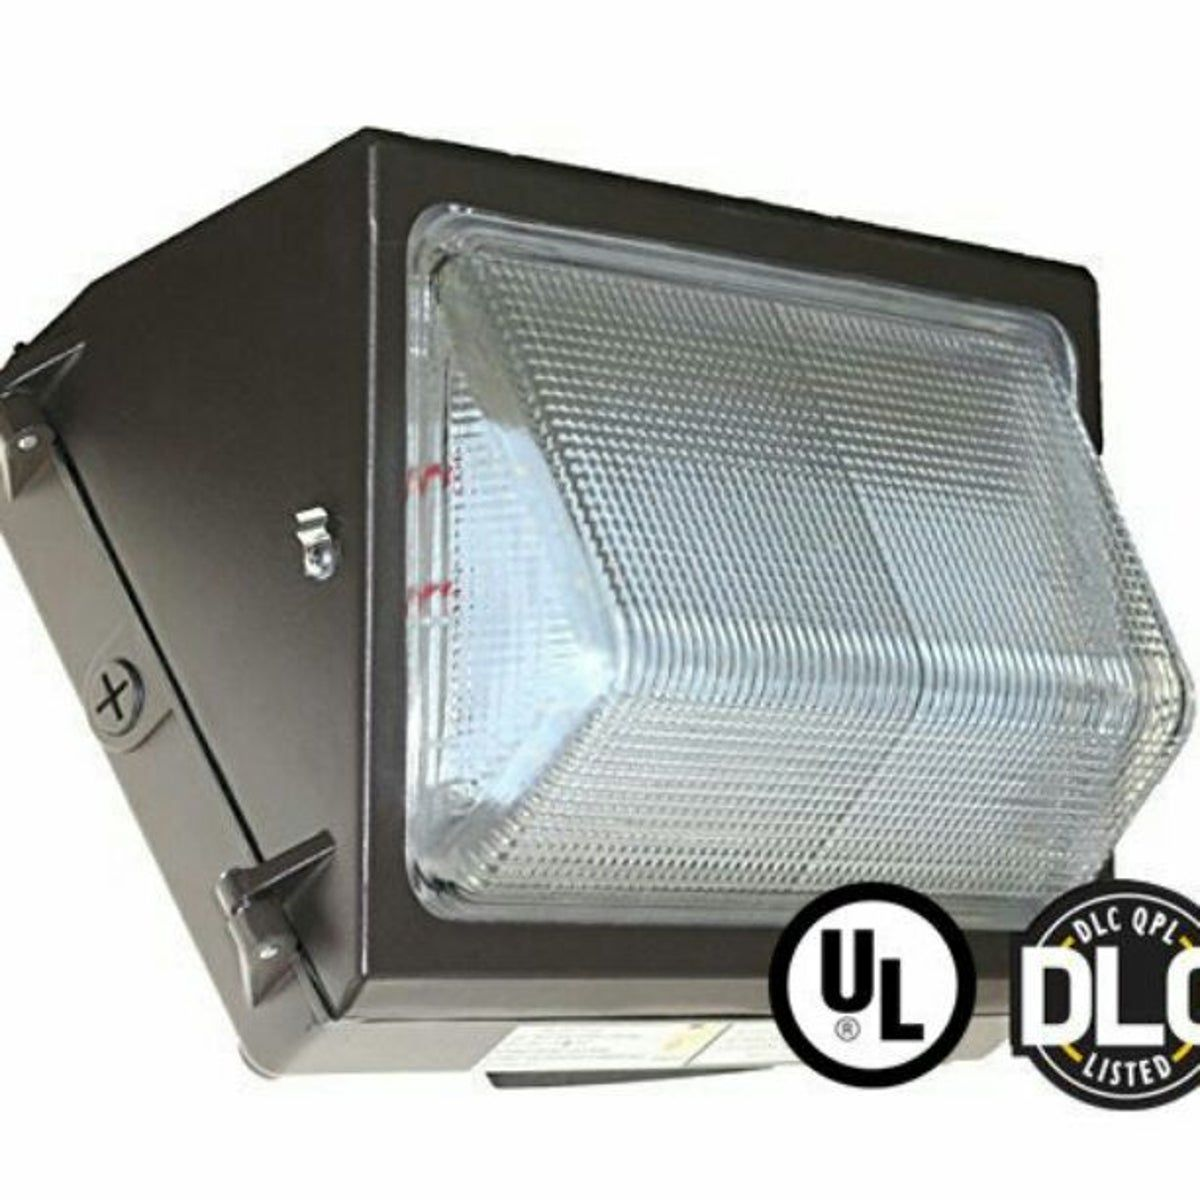 45 Watt Led Wallpack Wall Pack Lights Wall Packs Led